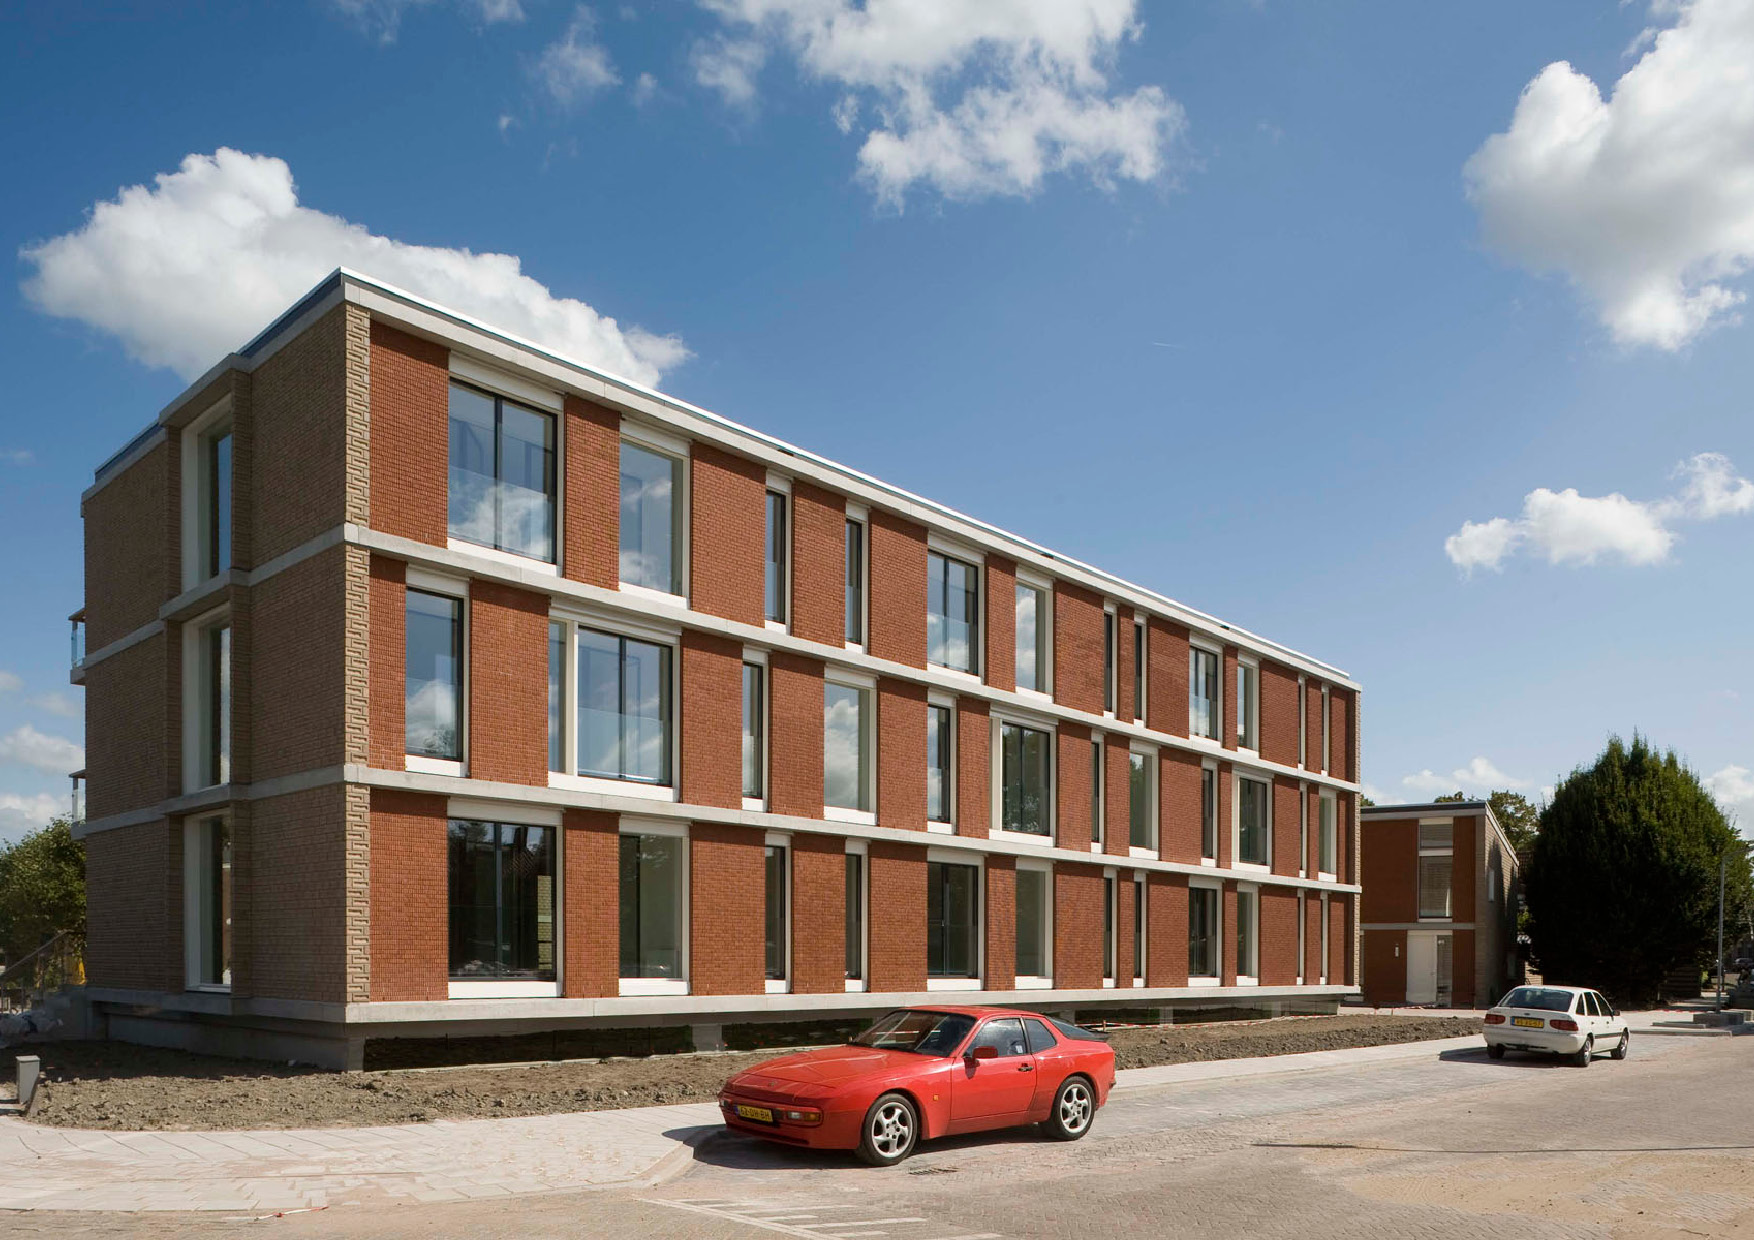 30 senior housing, edam